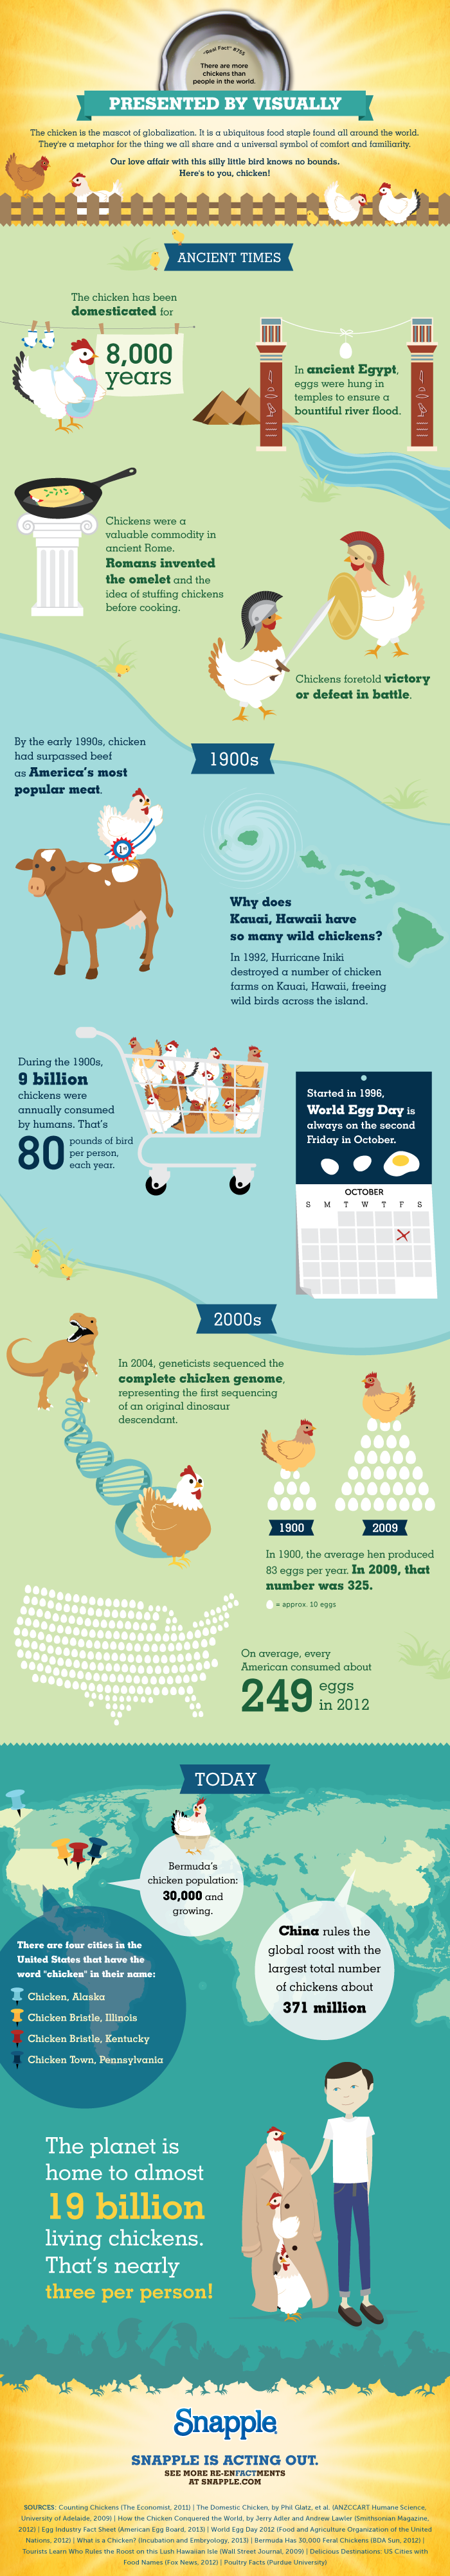 Chickens are more than Human infographics